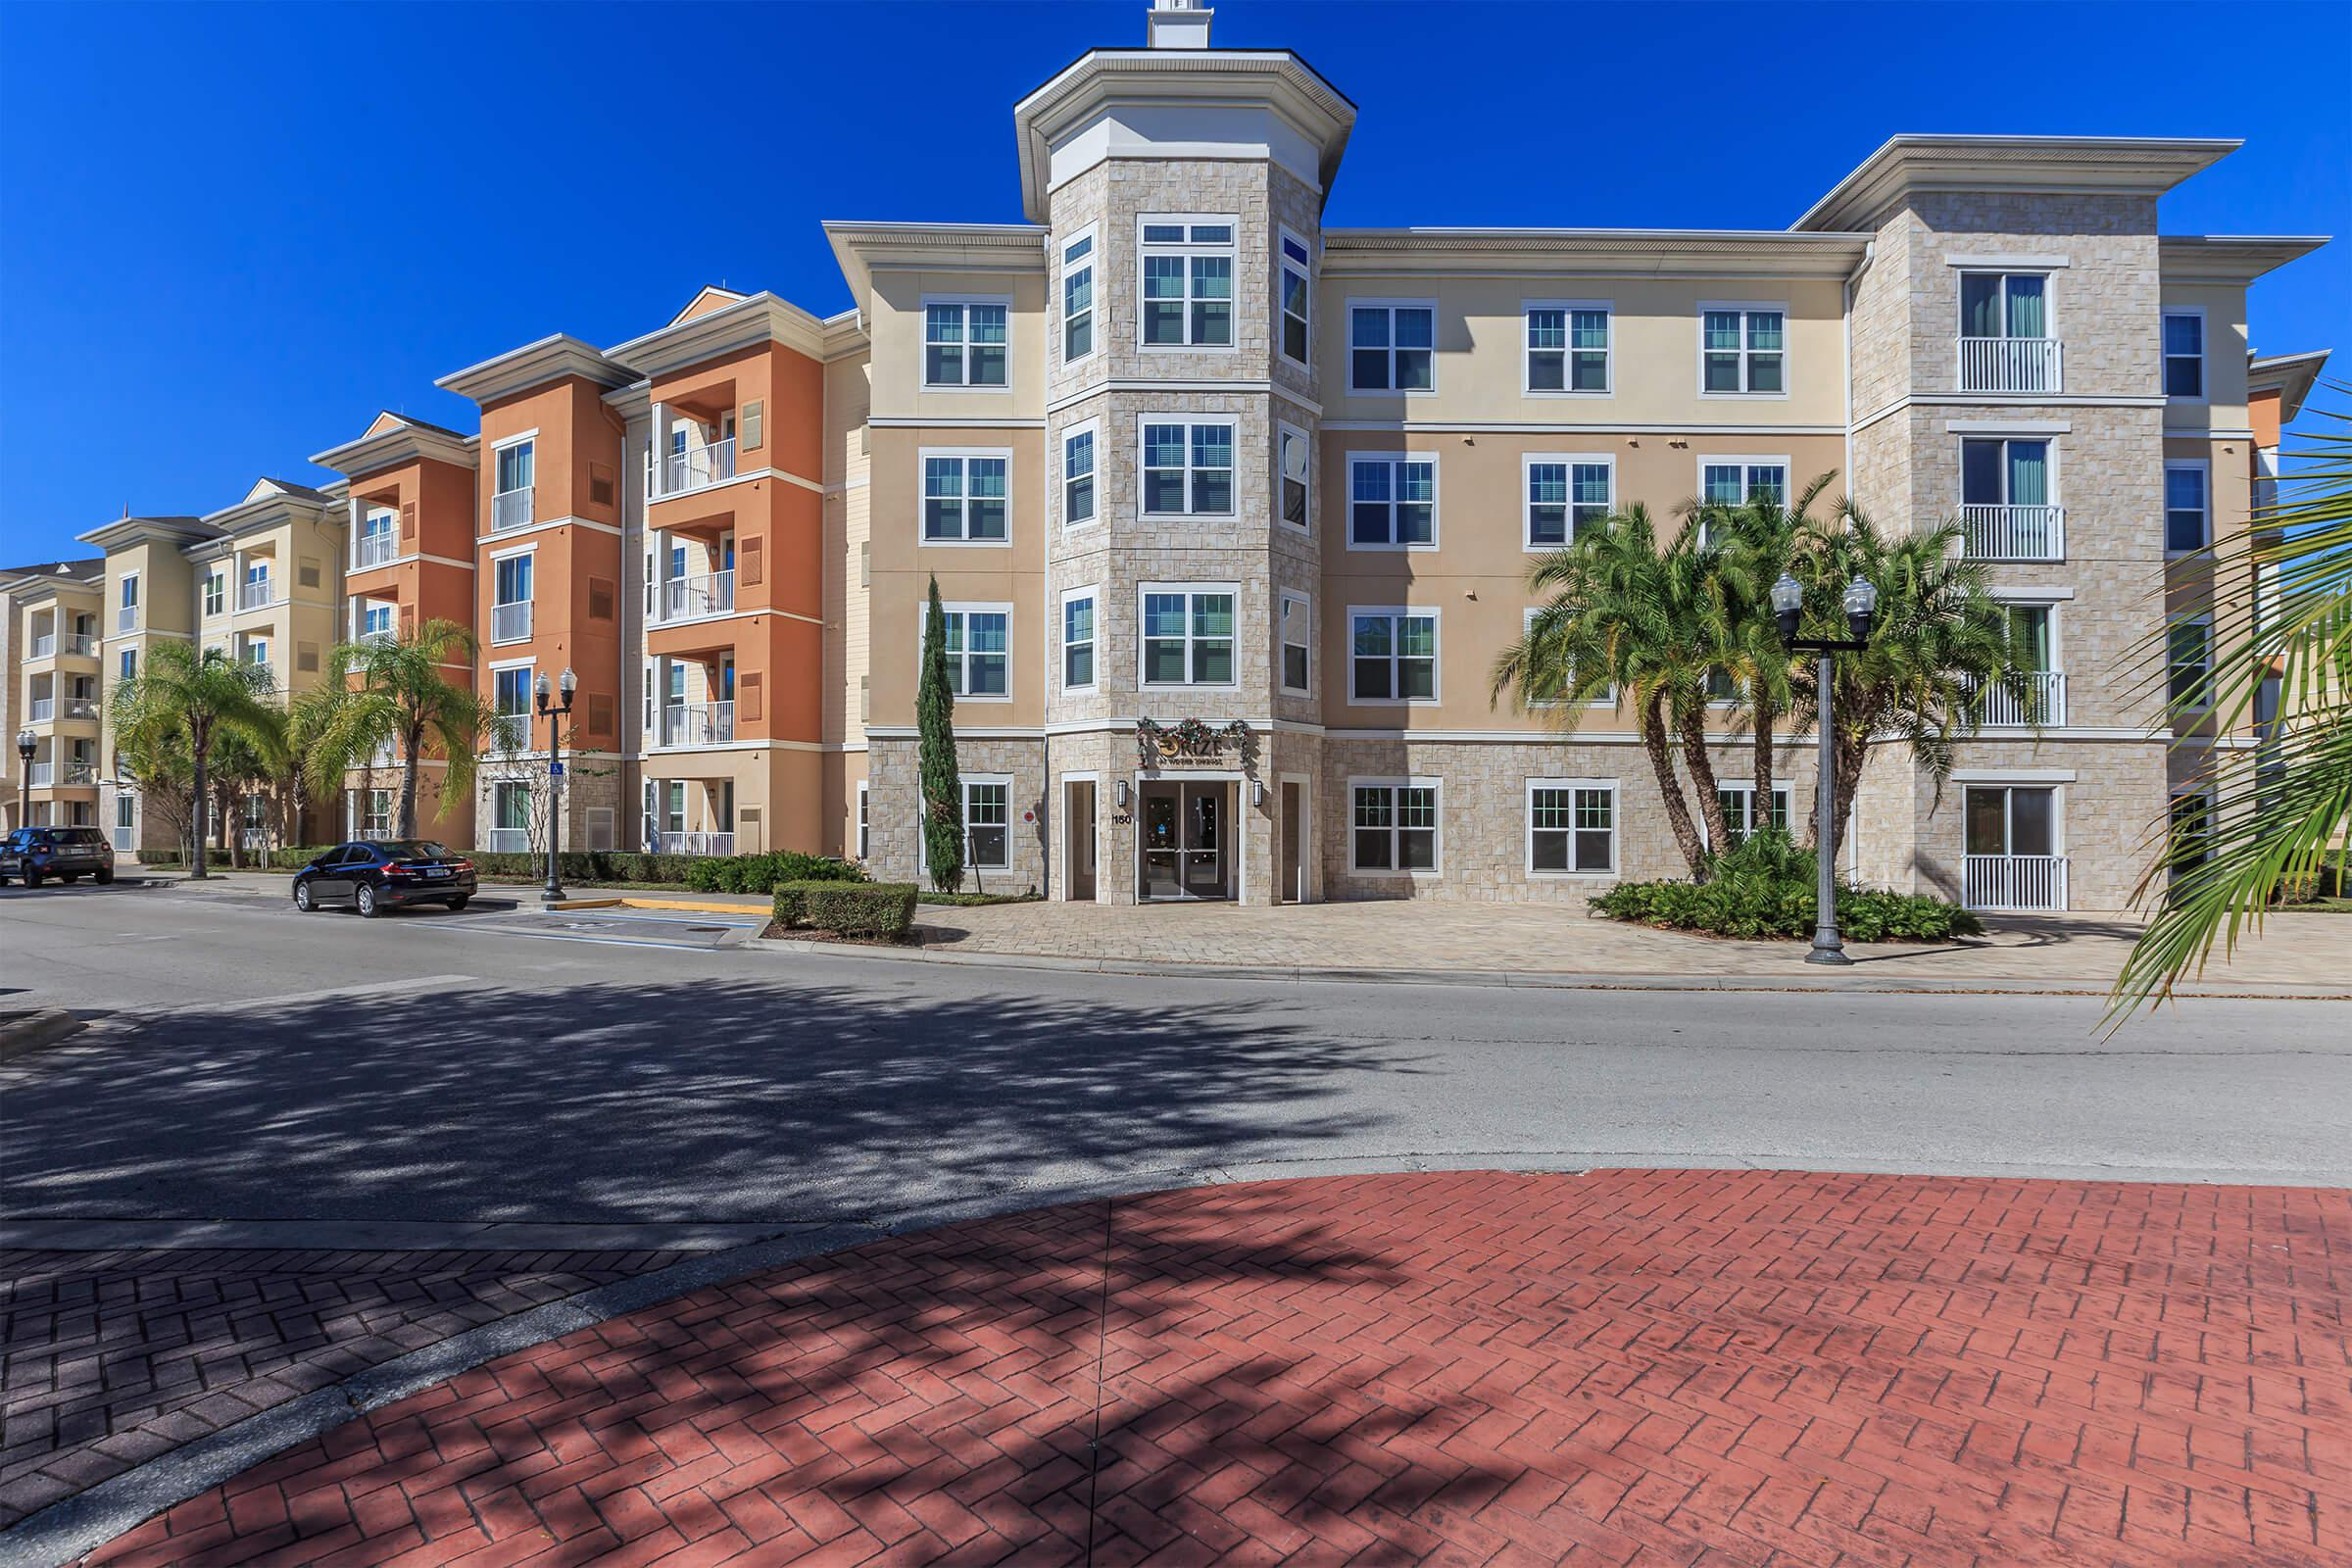 Landscaping at RiZE at Winter Springs Apartments in Winter Springs, FL